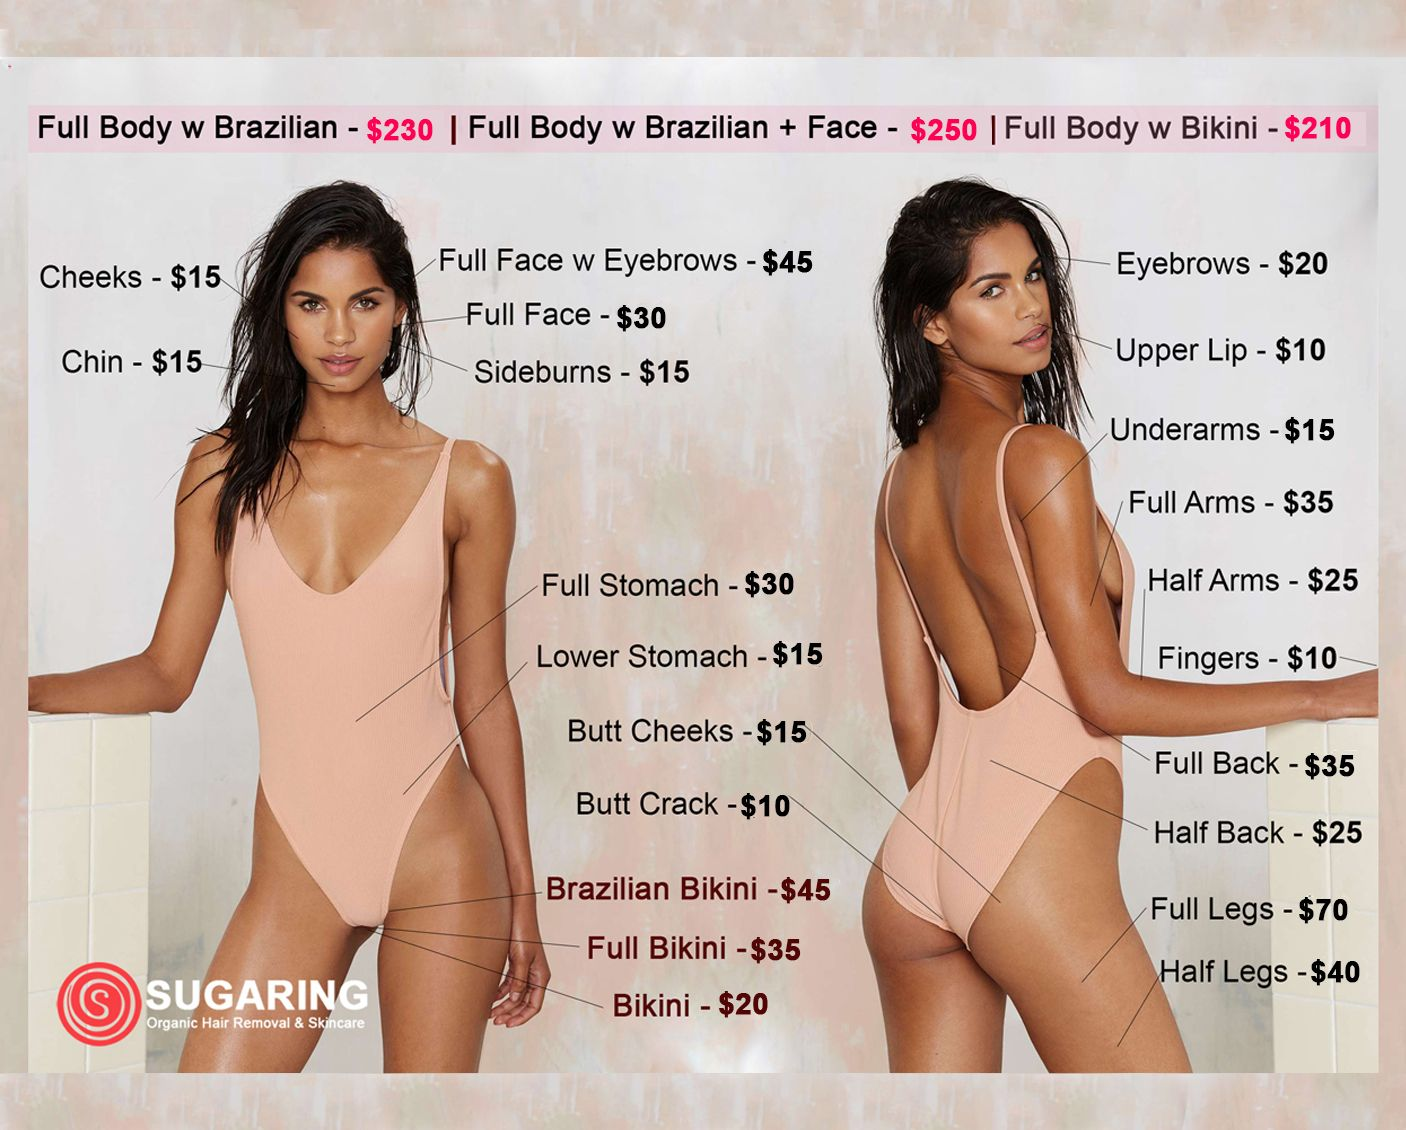 Prices Sugaring Hair Removal Brazilian Hair Removal Sugaring